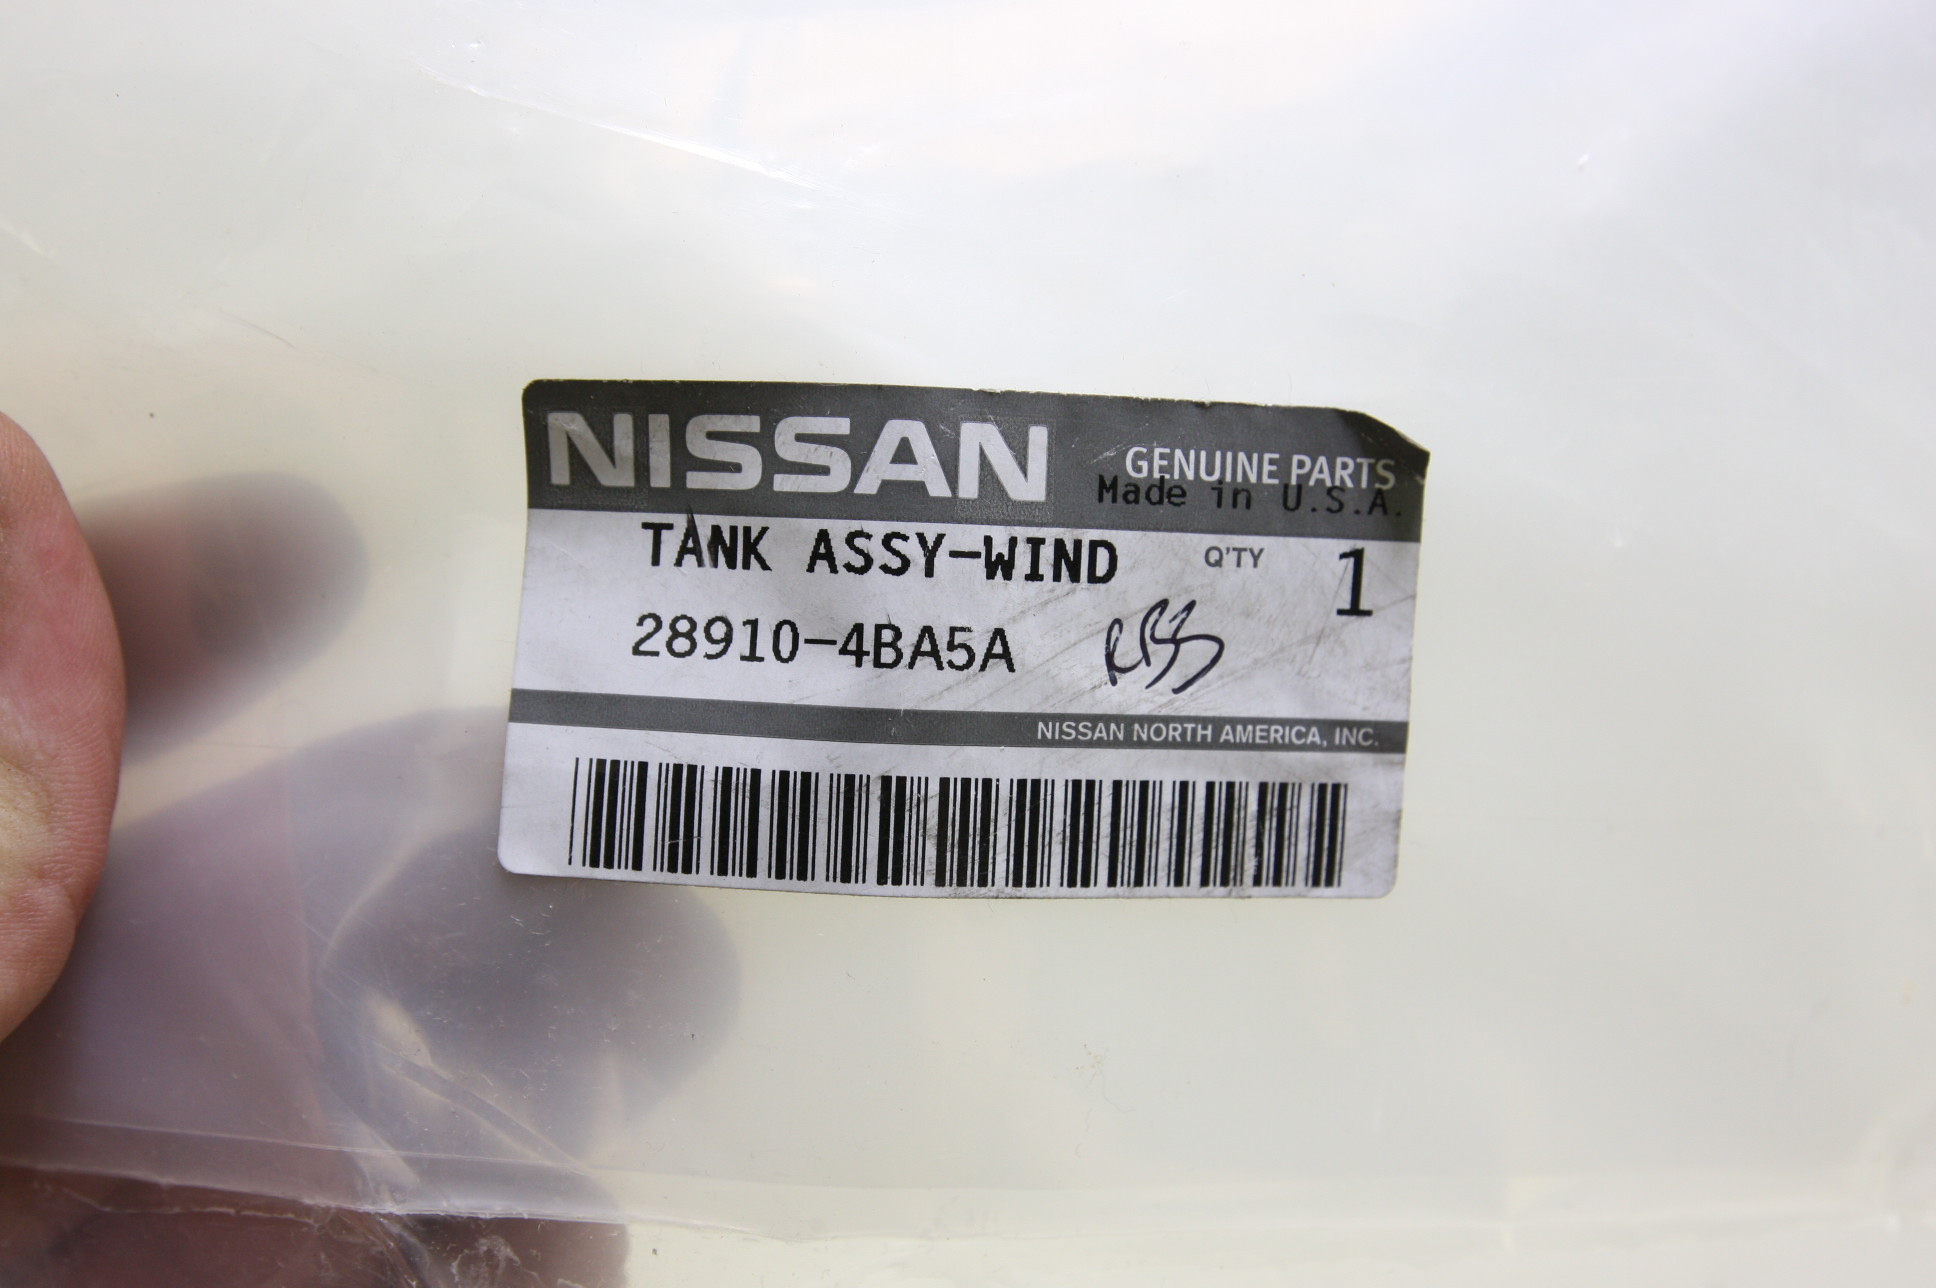 New OEM 28910-4BA5A Nissan 14-16 Rogue Windshield Washer Fluid Reservoir Tank - image 2